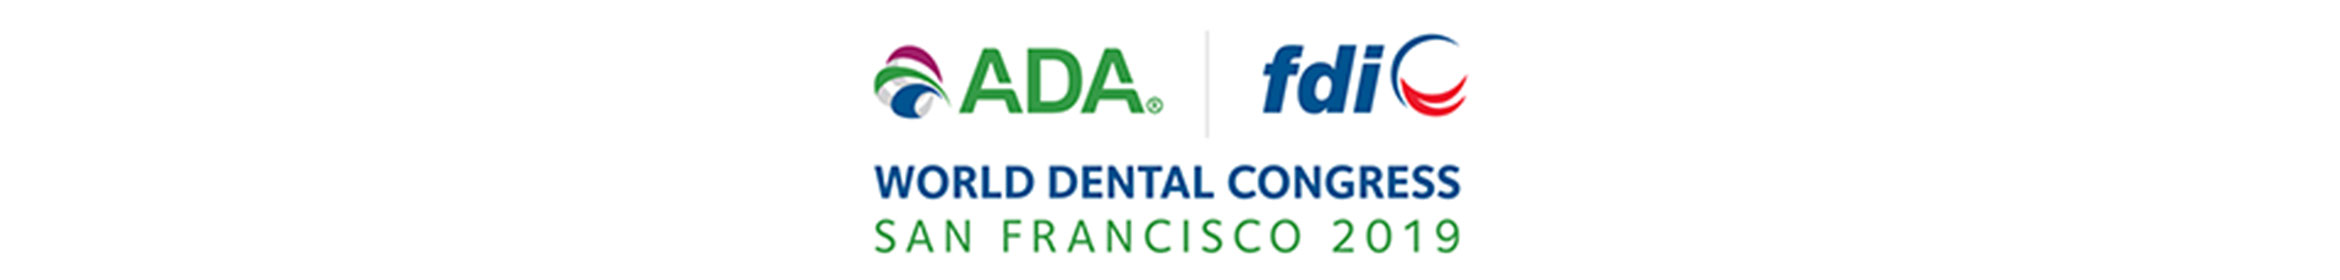 ADA FDI  2019 World Dental Congress Main banner